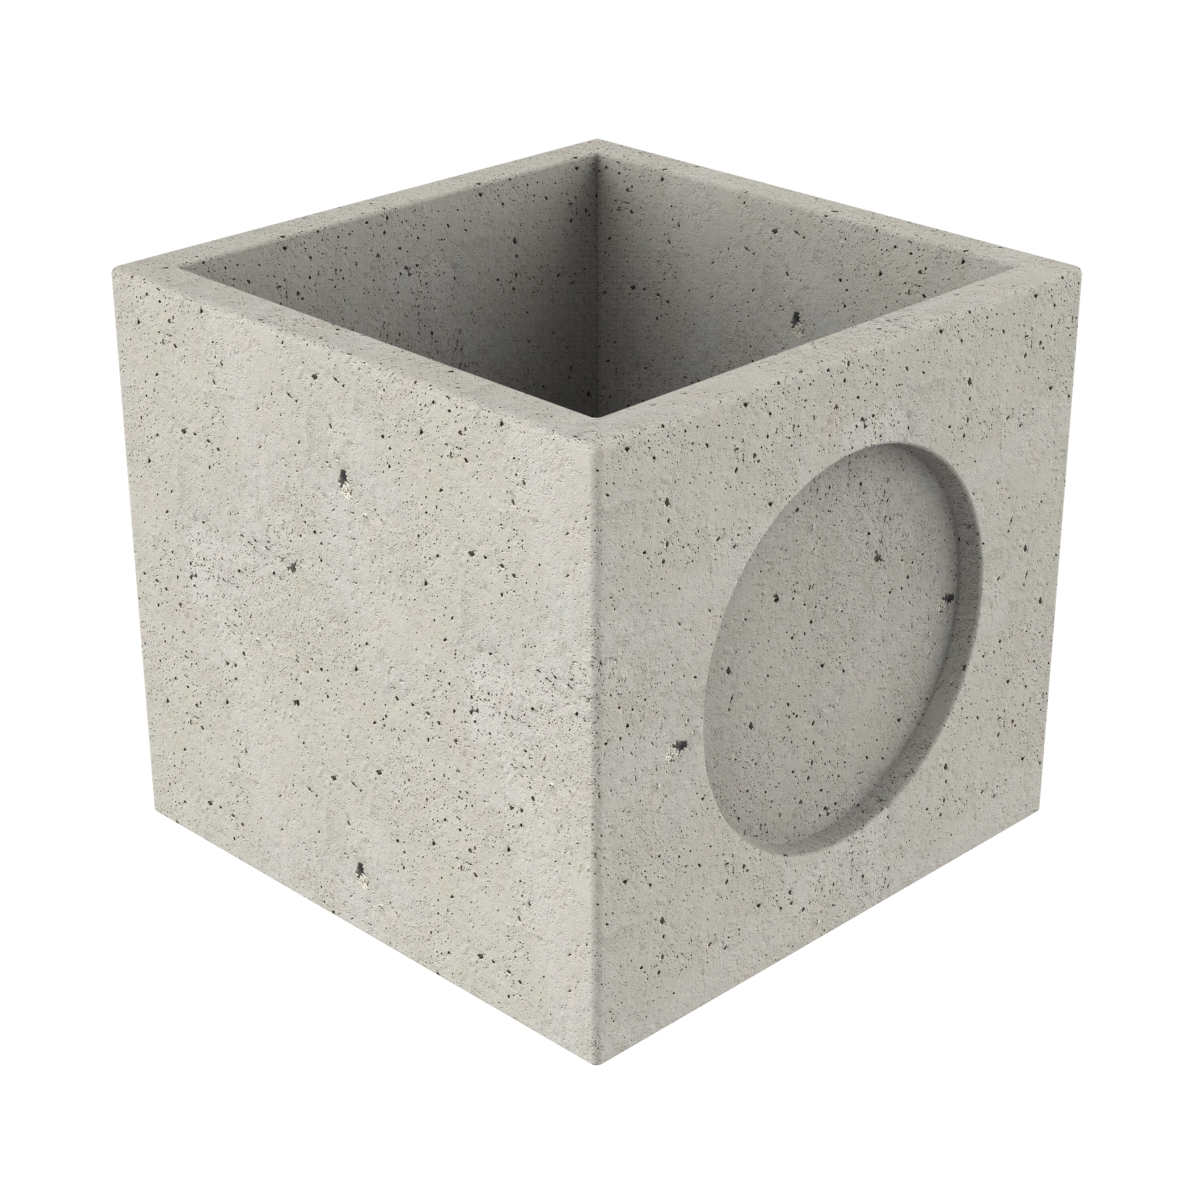 Premanufactured precast chamber of concrete with wall-plate 80x80x77